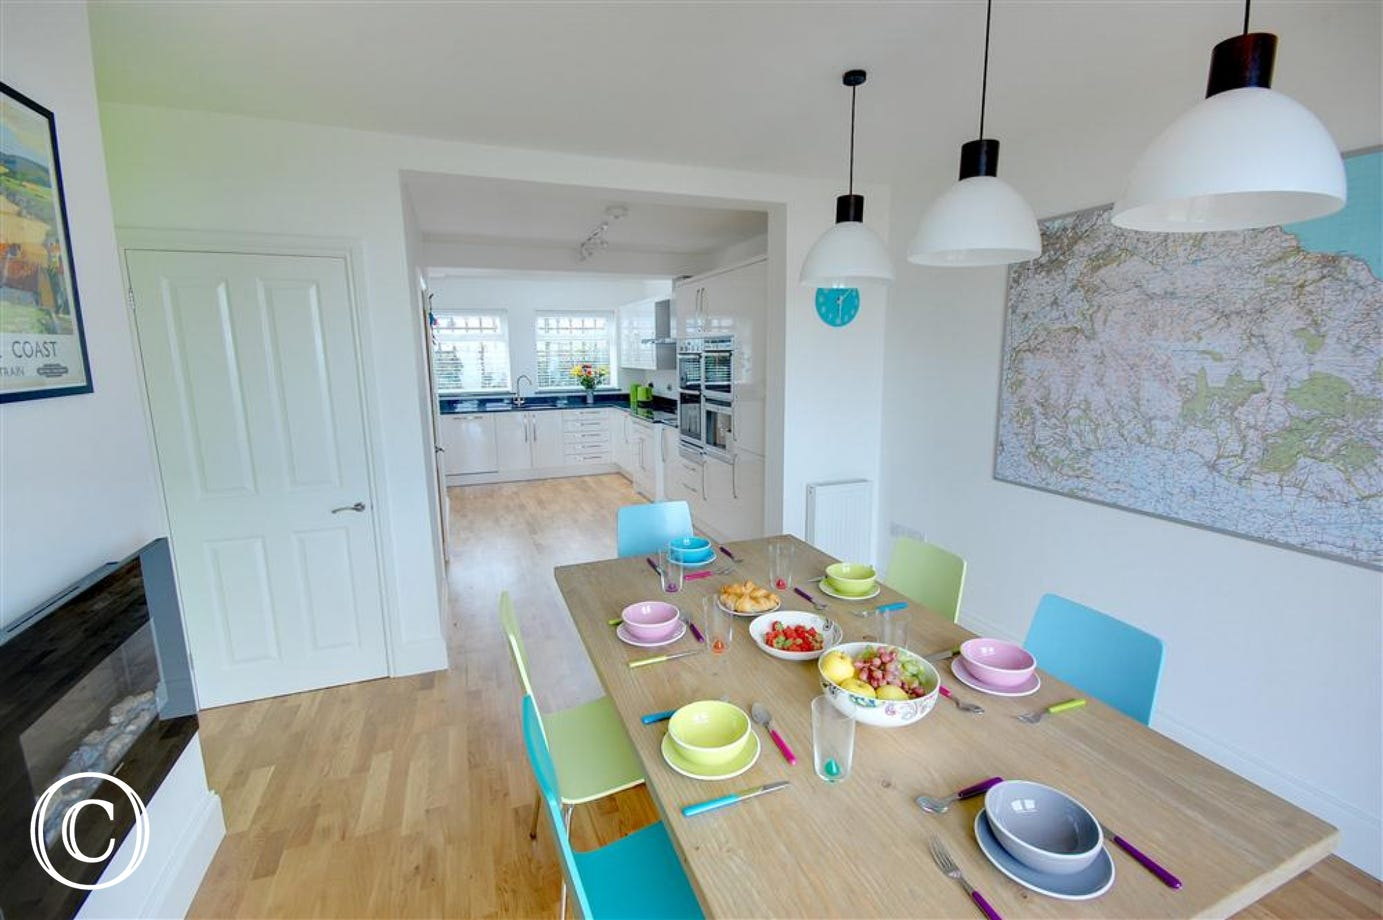 The Dining Area is adjoined to the open-plan kitchen. Plenty of space throughout these two rooms.